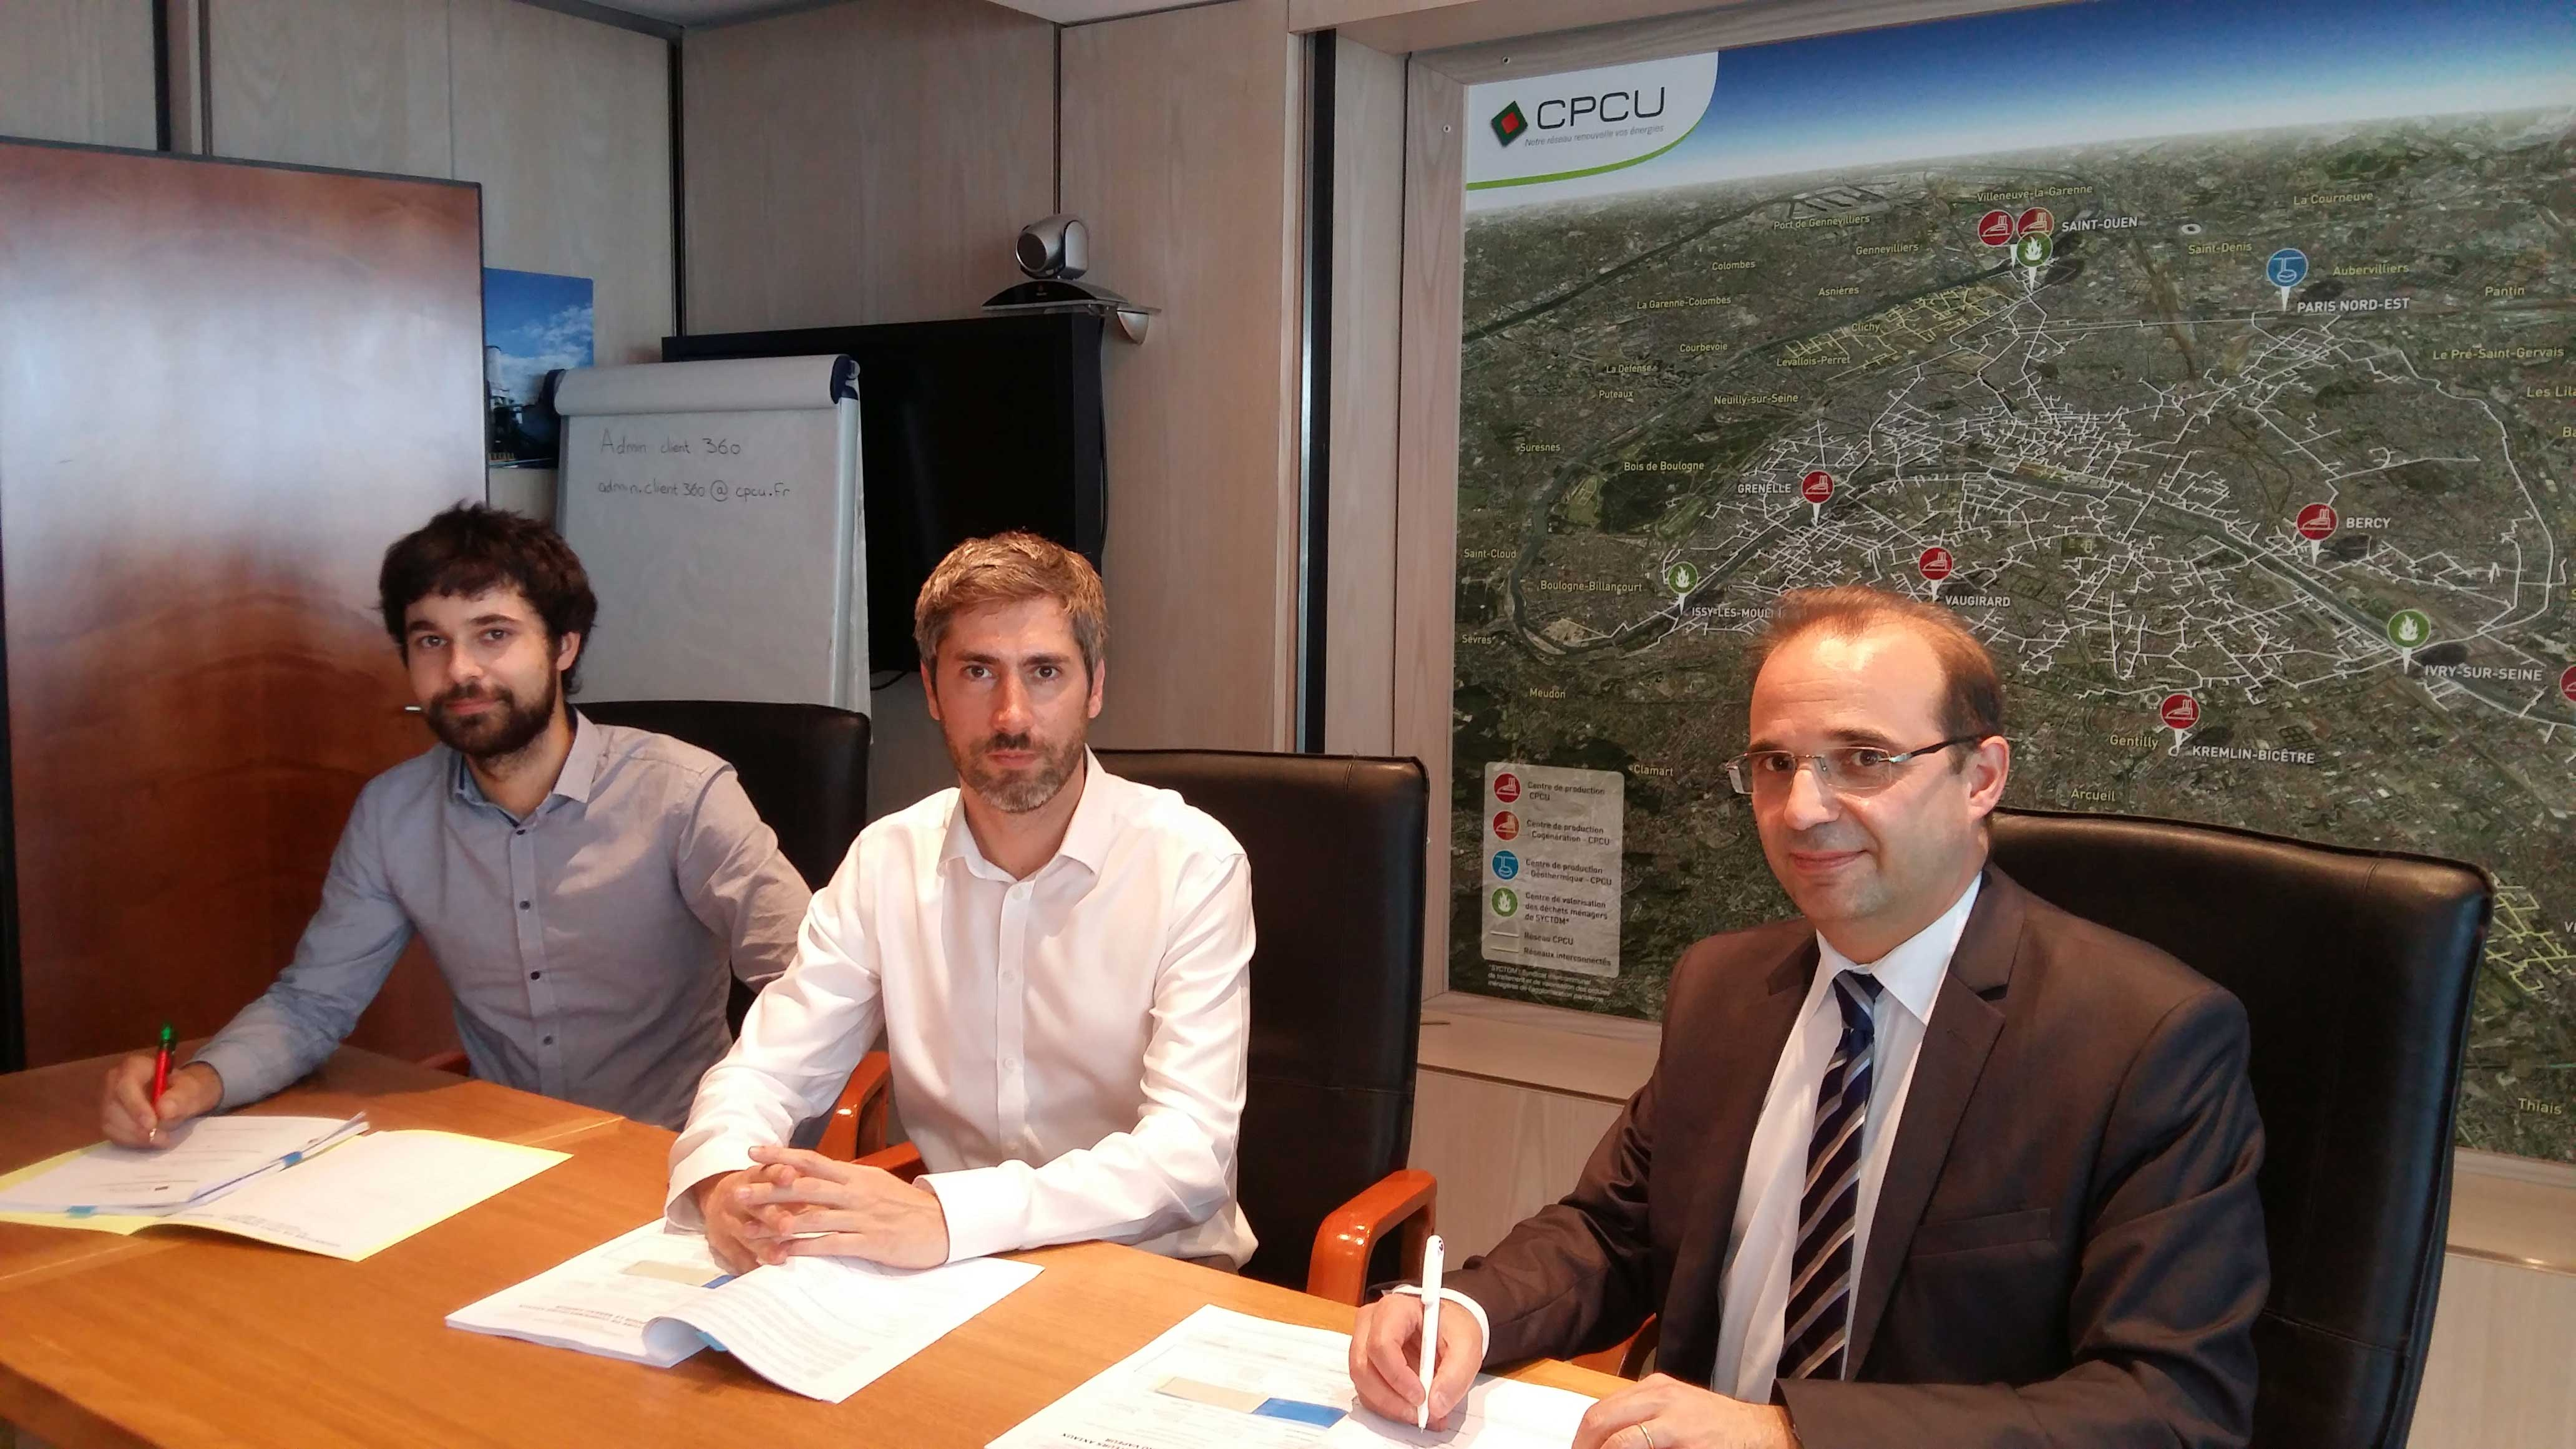 Fives-Nordon-signature-contrat-CPCU-FIVES